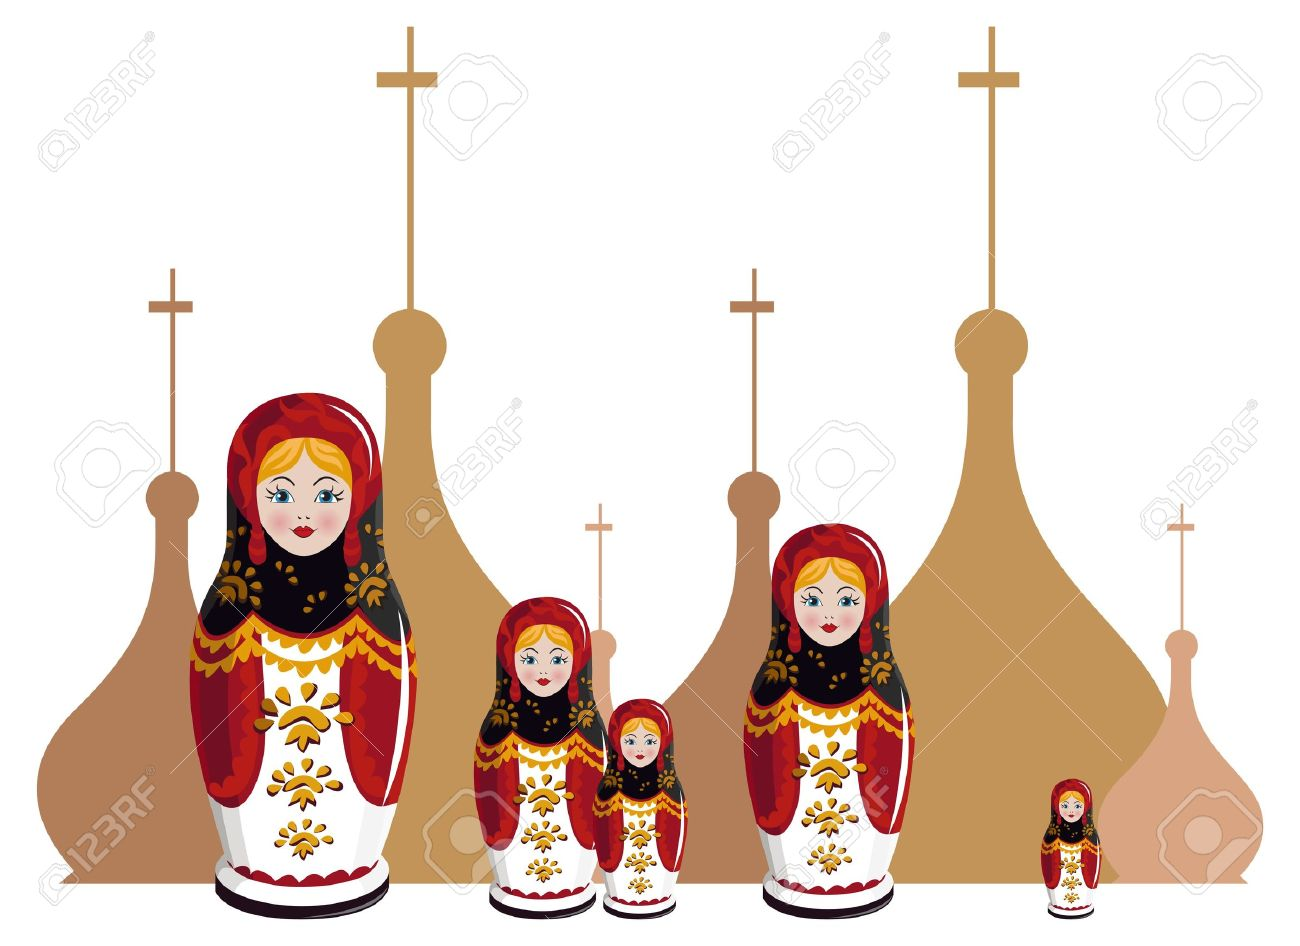 Illustration Of Russian Dolls With Onion Domes Silhouette Royalty.